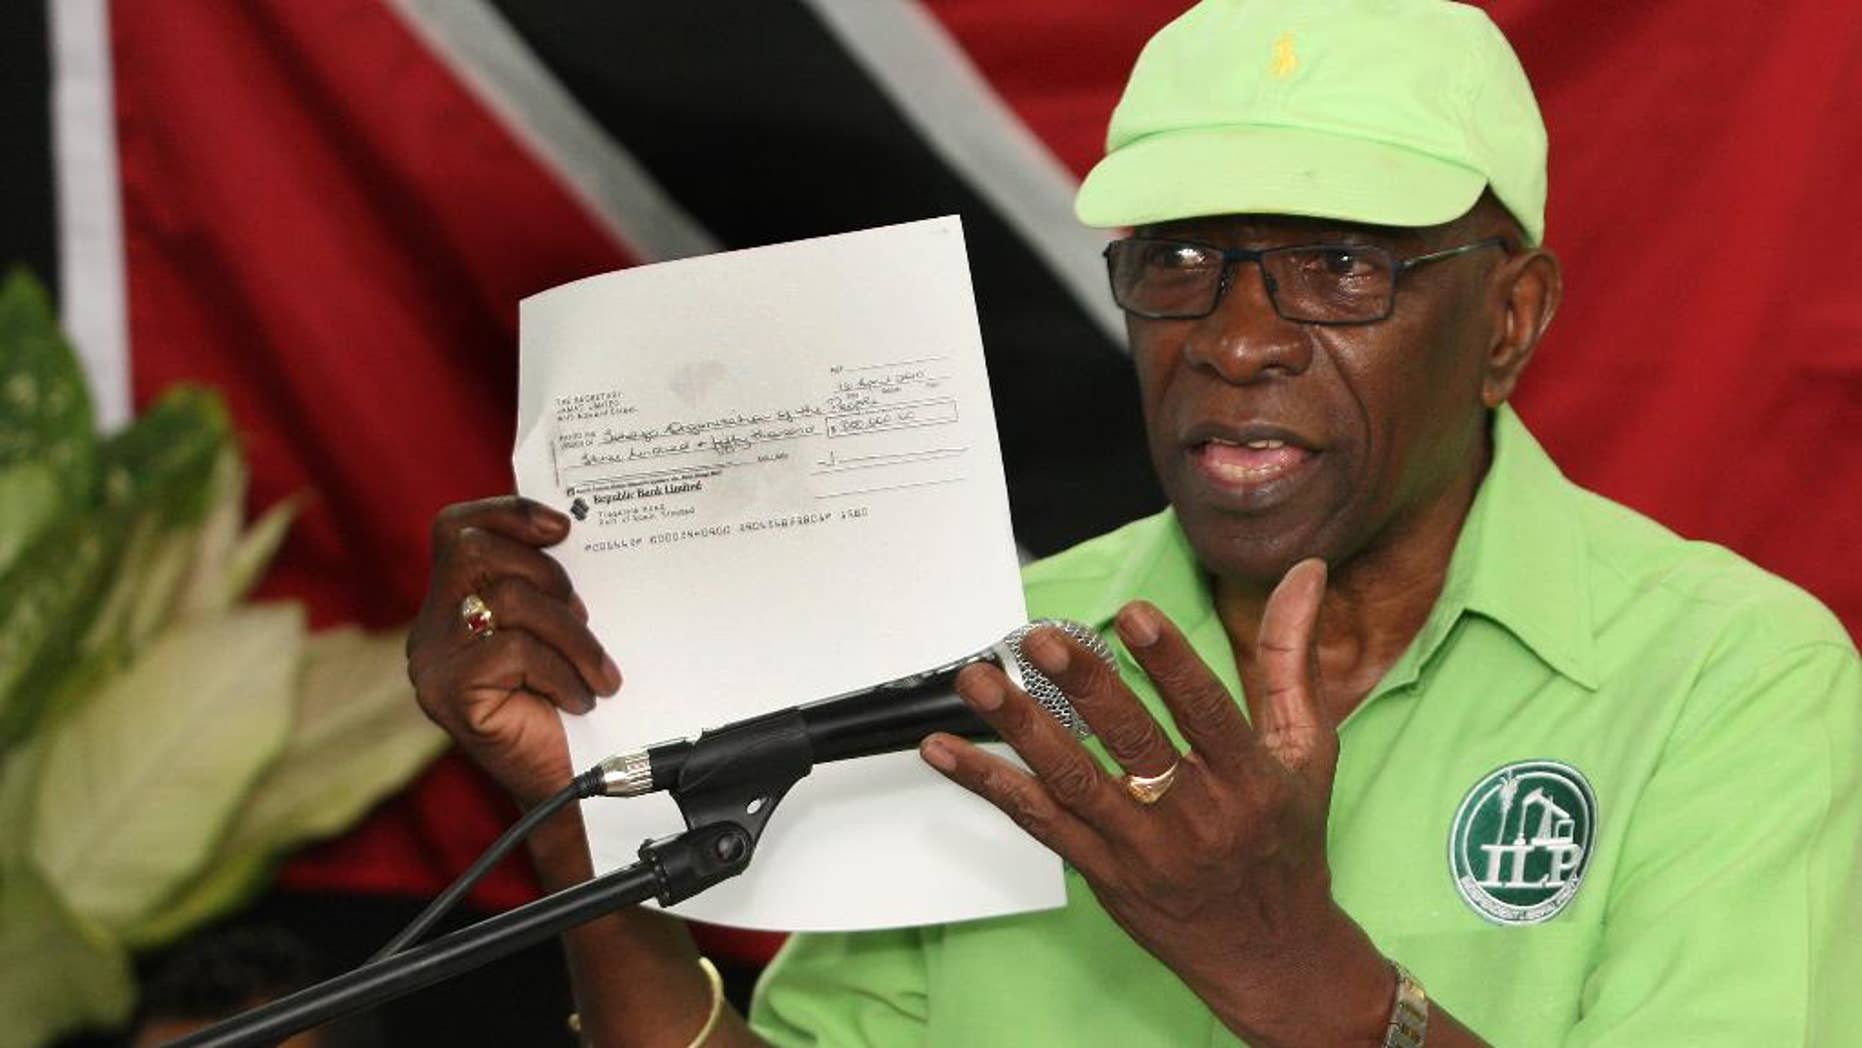 FILE - In this June 3, 2015, file photo, former FIFA vice president Jack Warner hold a copy of a check while he speaks at a political rally in Marabella, Trinidad and Tobago. Trinidad and Tobago's attorney general has signed documents on Monday, Sept. 21, 2015, that pave the way for U.S. extradition proceedings against Warner. The former FIFA vice president is resisting extradition on U.S. charges of racketeering, wire fraud and money laundering in the FIFA corruption case. (Photo/Anthony Harris, File)